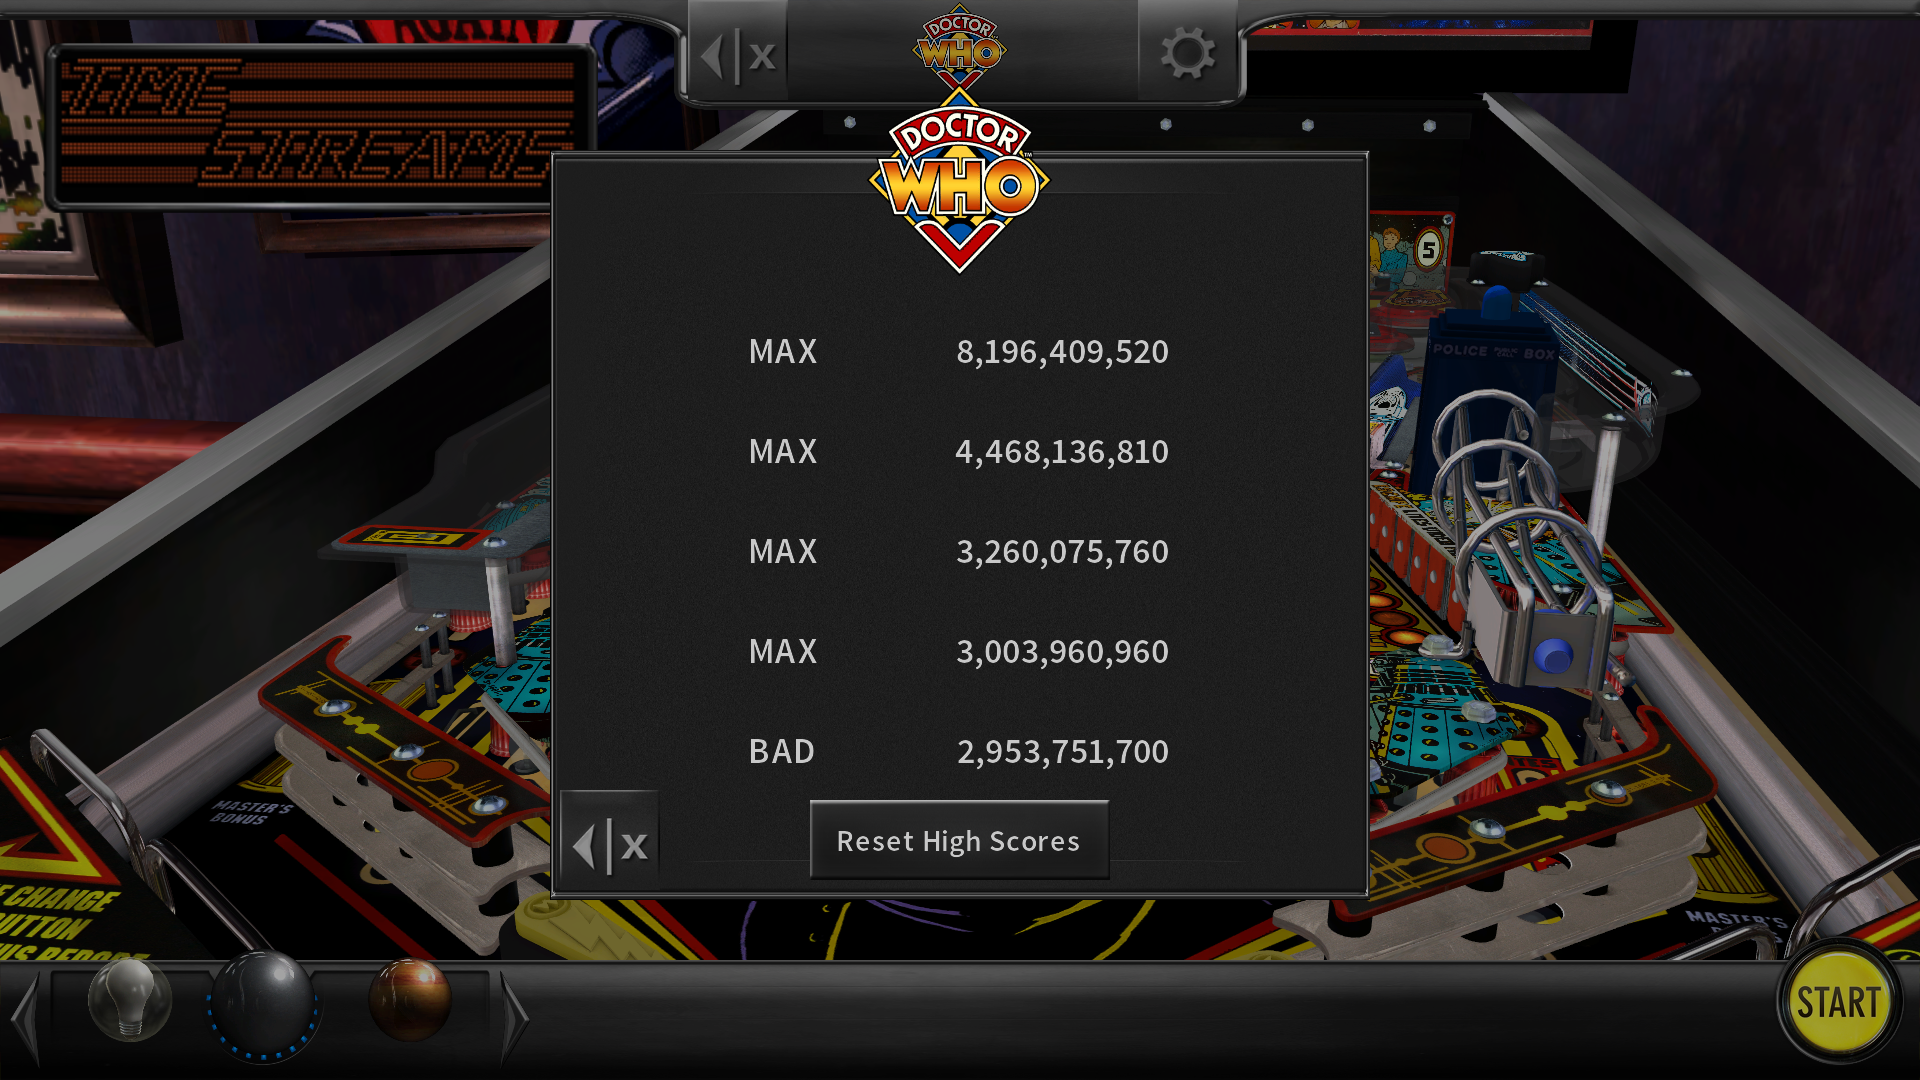 maxgreat: Pinball Arcade: Doctor Who (PC) 8,196,409,520 points on 2018-05-11 18:42:21